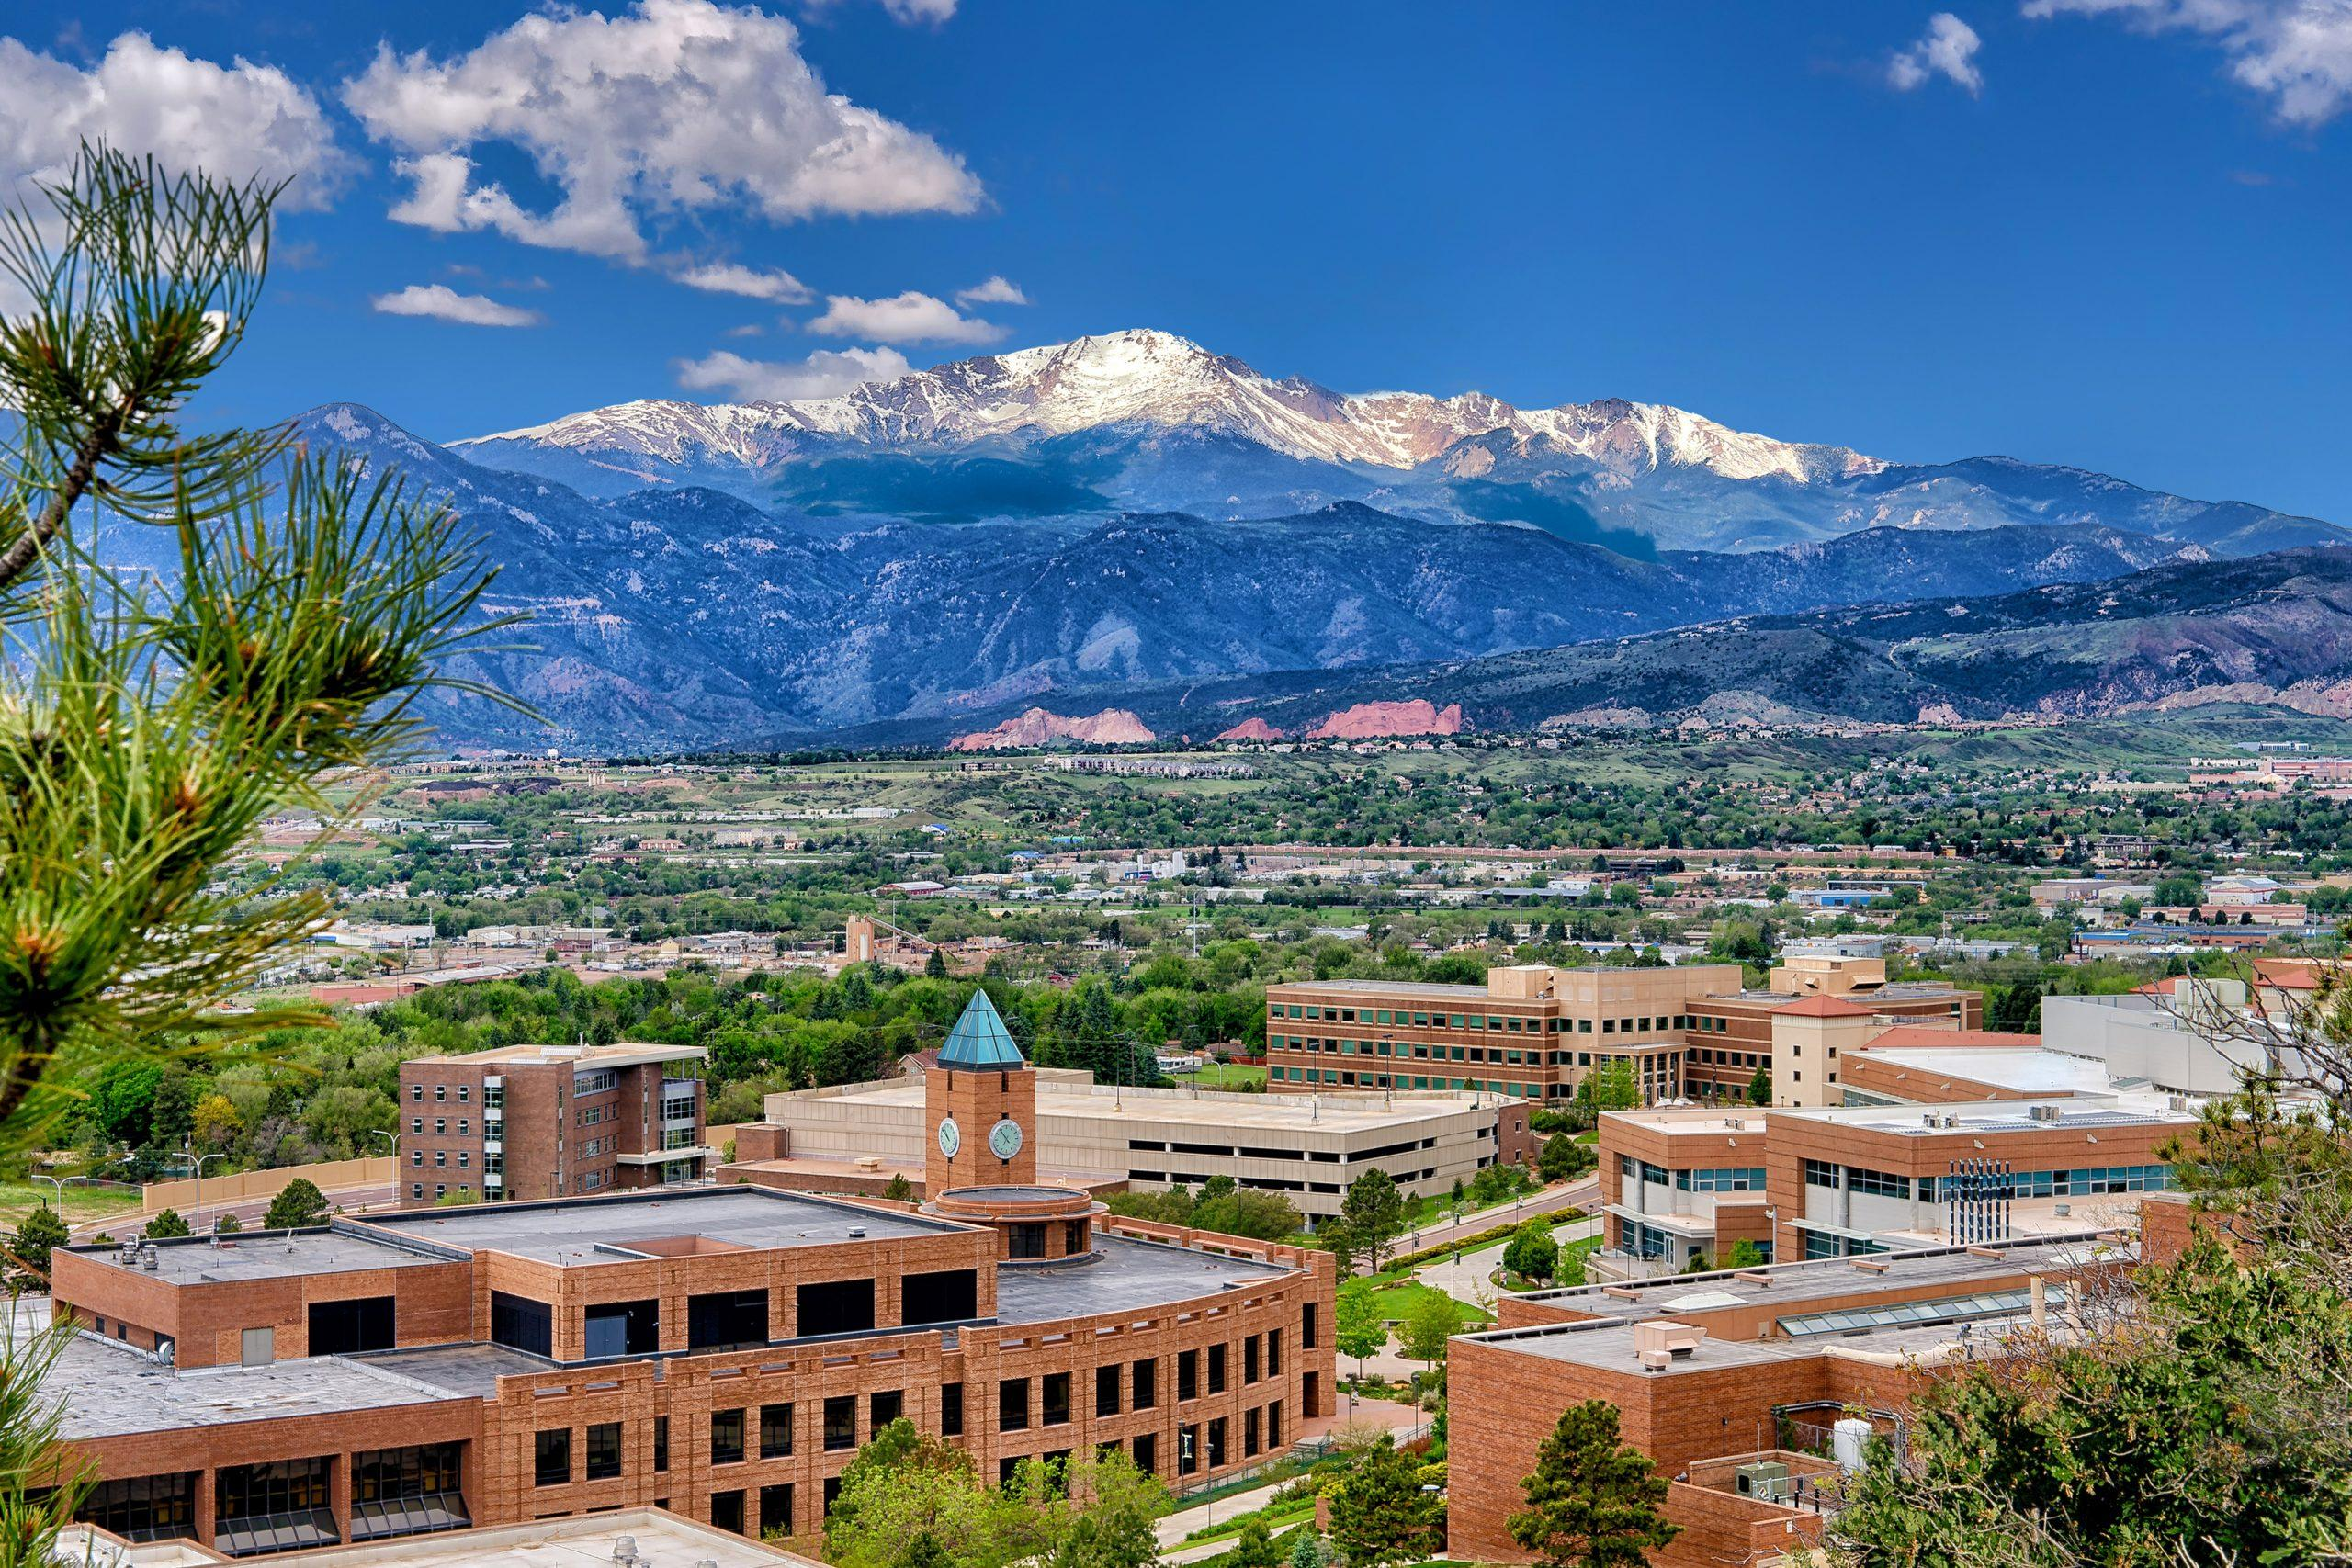 A wide angle of campus with Pikes Peak in the background